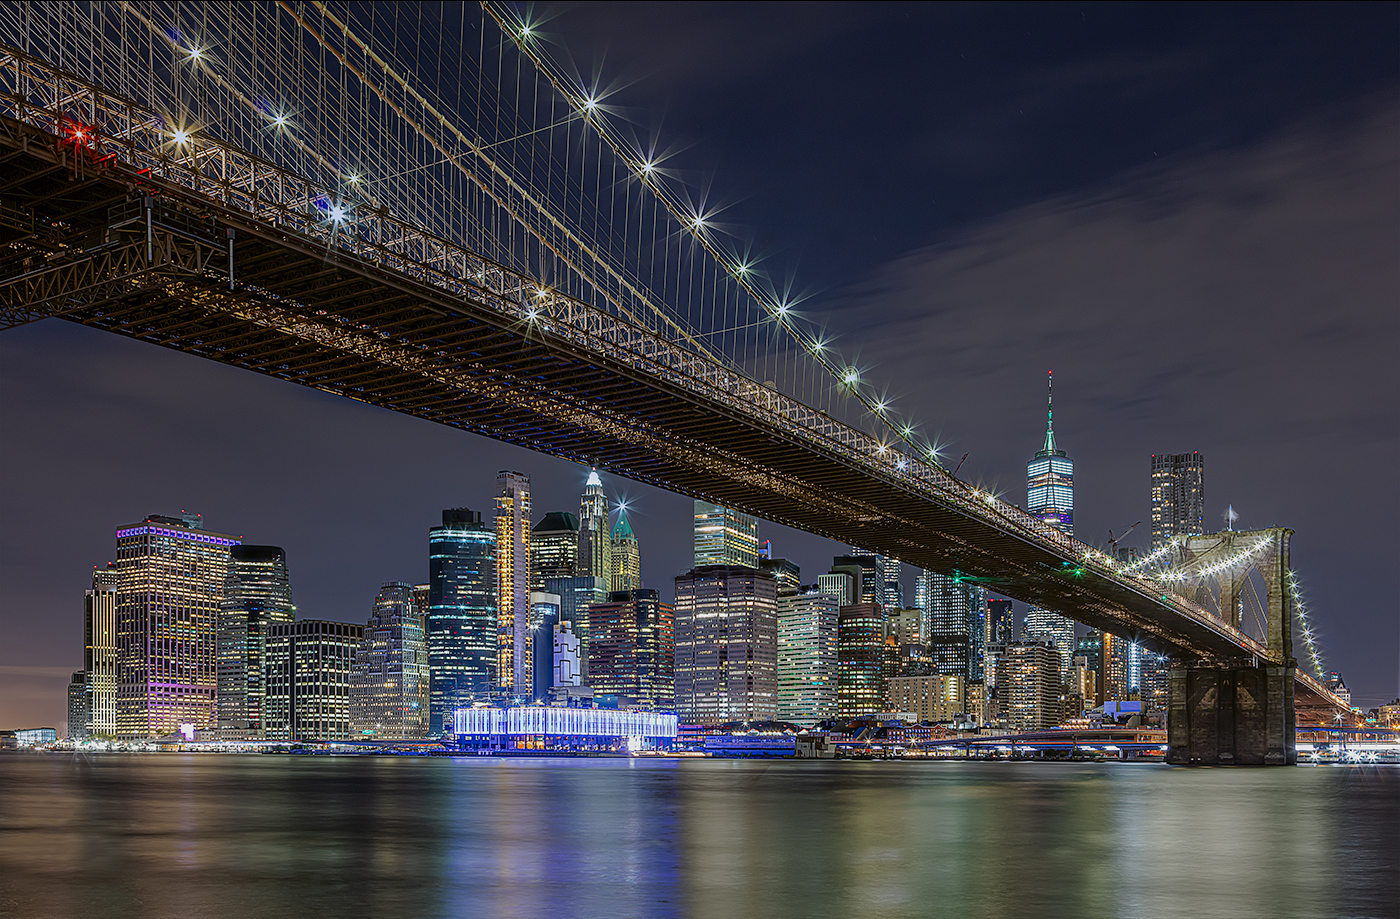 Midnight at the Brooklyn Bridge